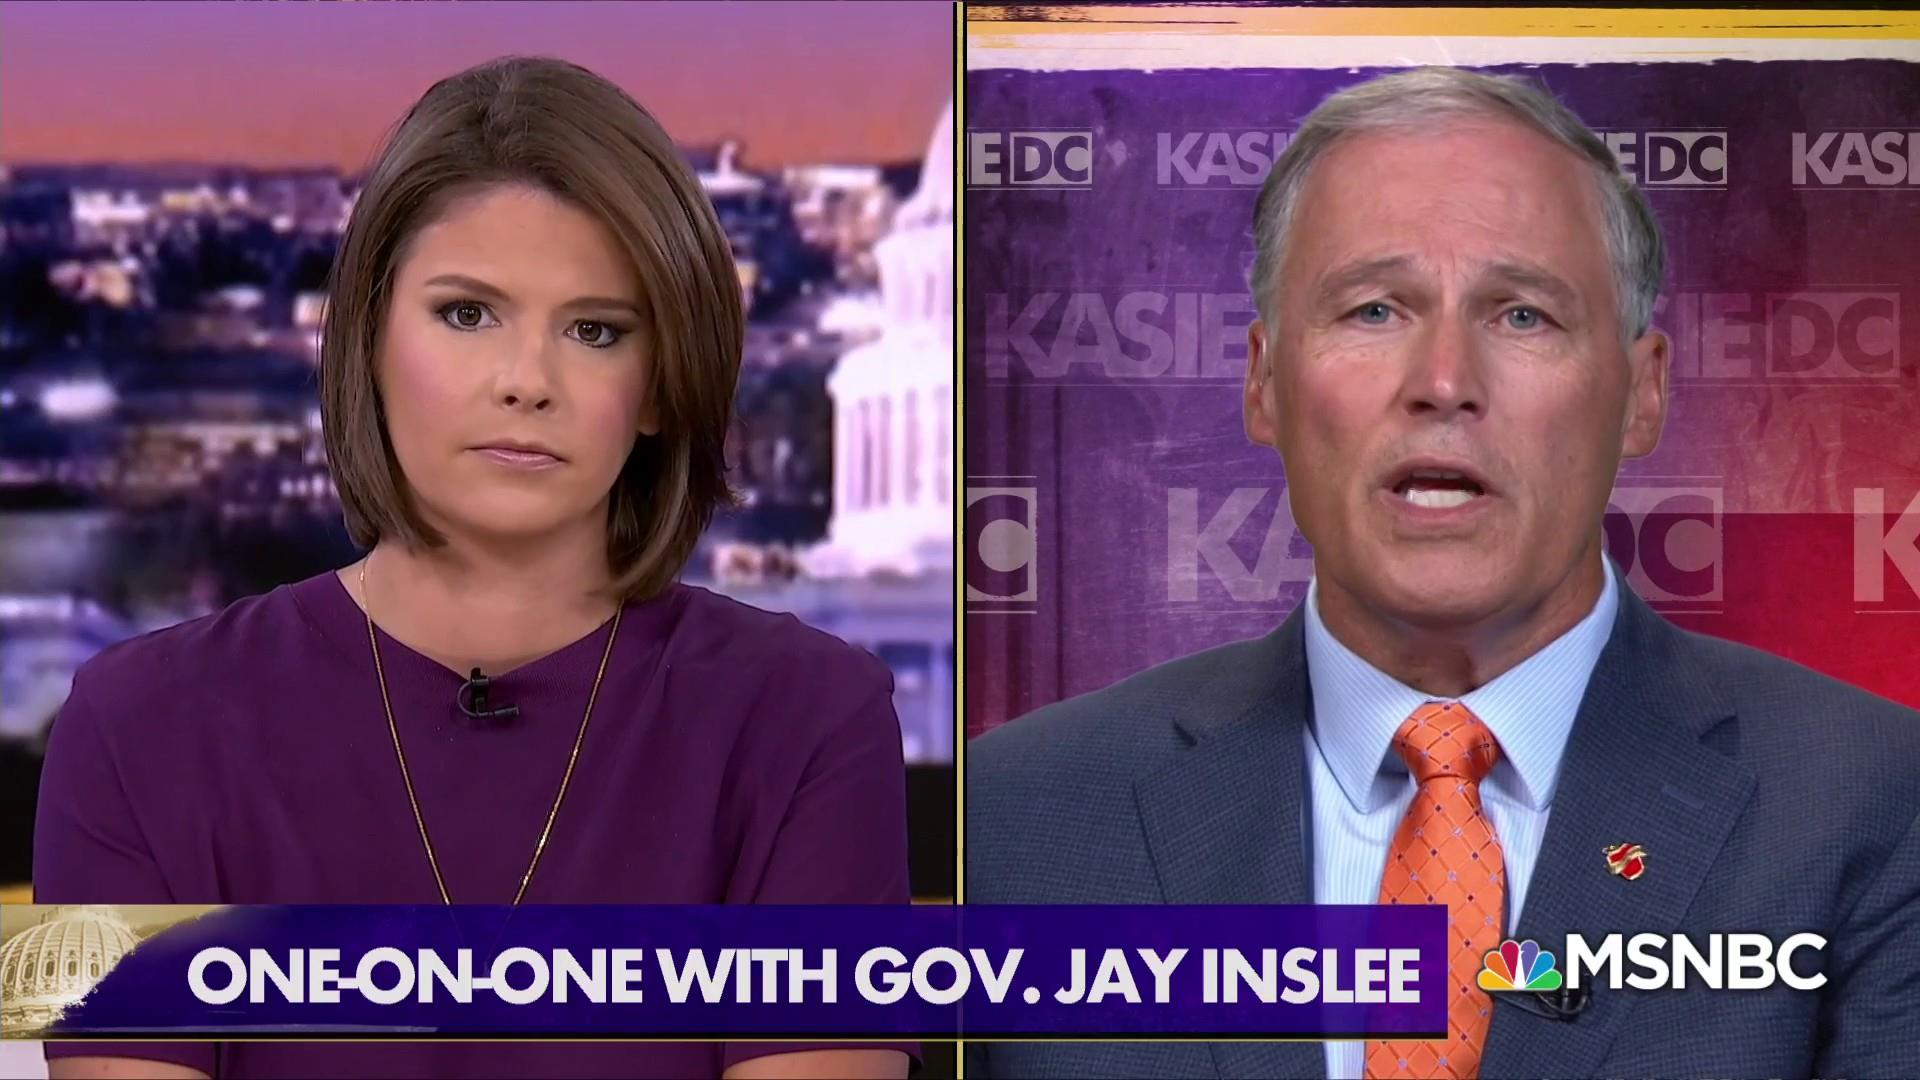 Gov. Inslee won't rule out a run for president in 2020